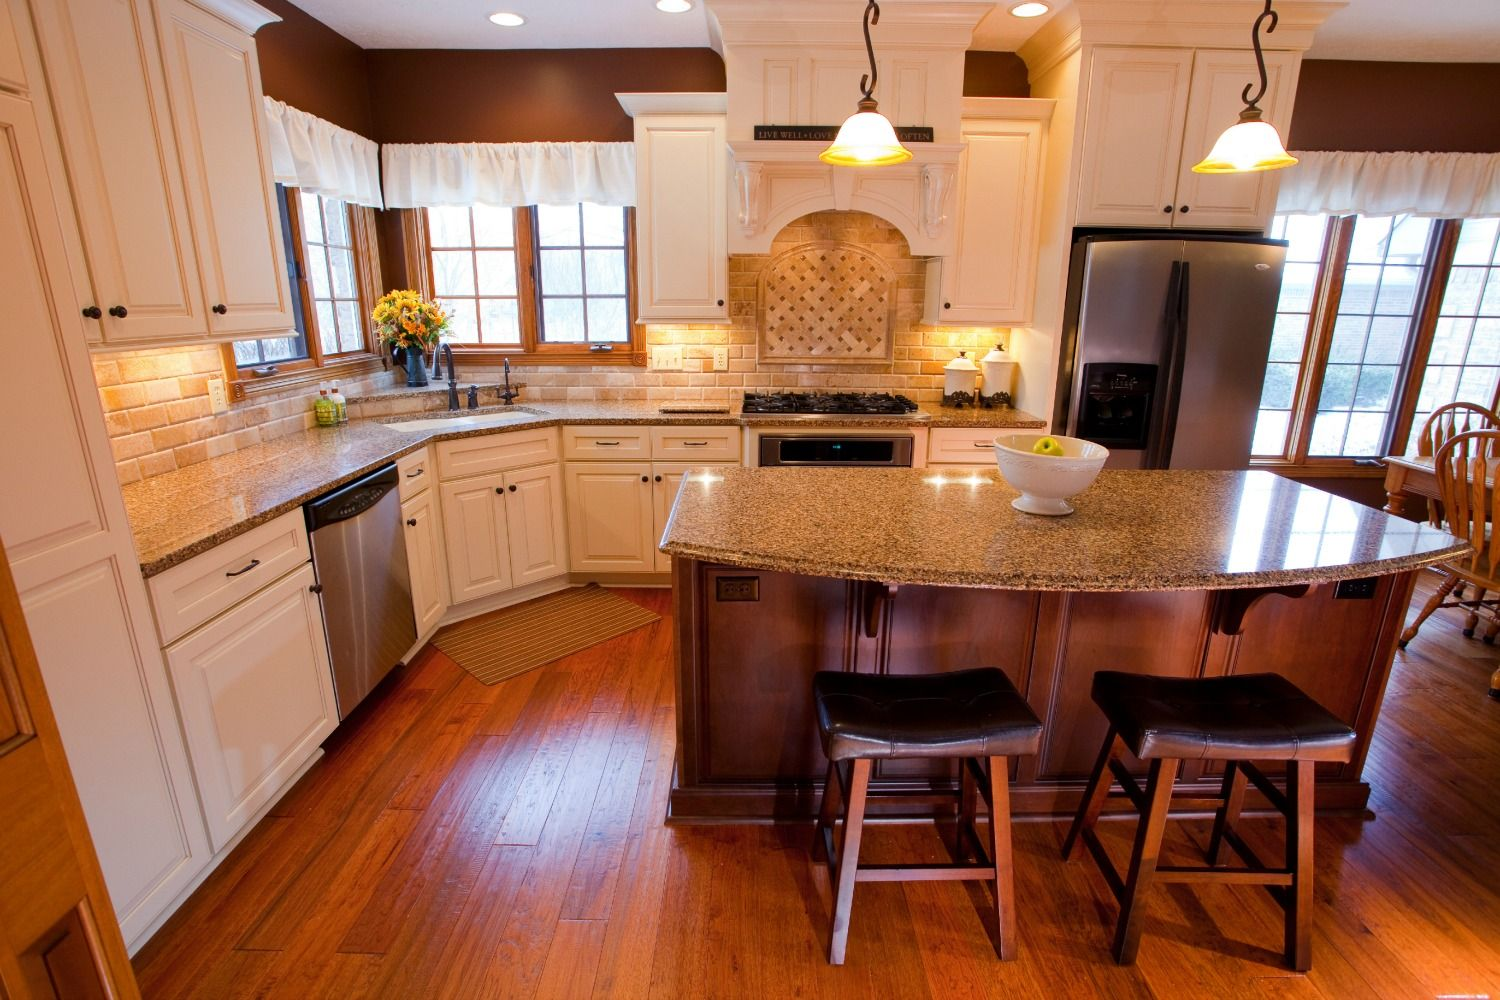 Kitchen With Fireplace Remodel: Bender Kitchen Fireplace Remodel ~ Decoration Inspiration